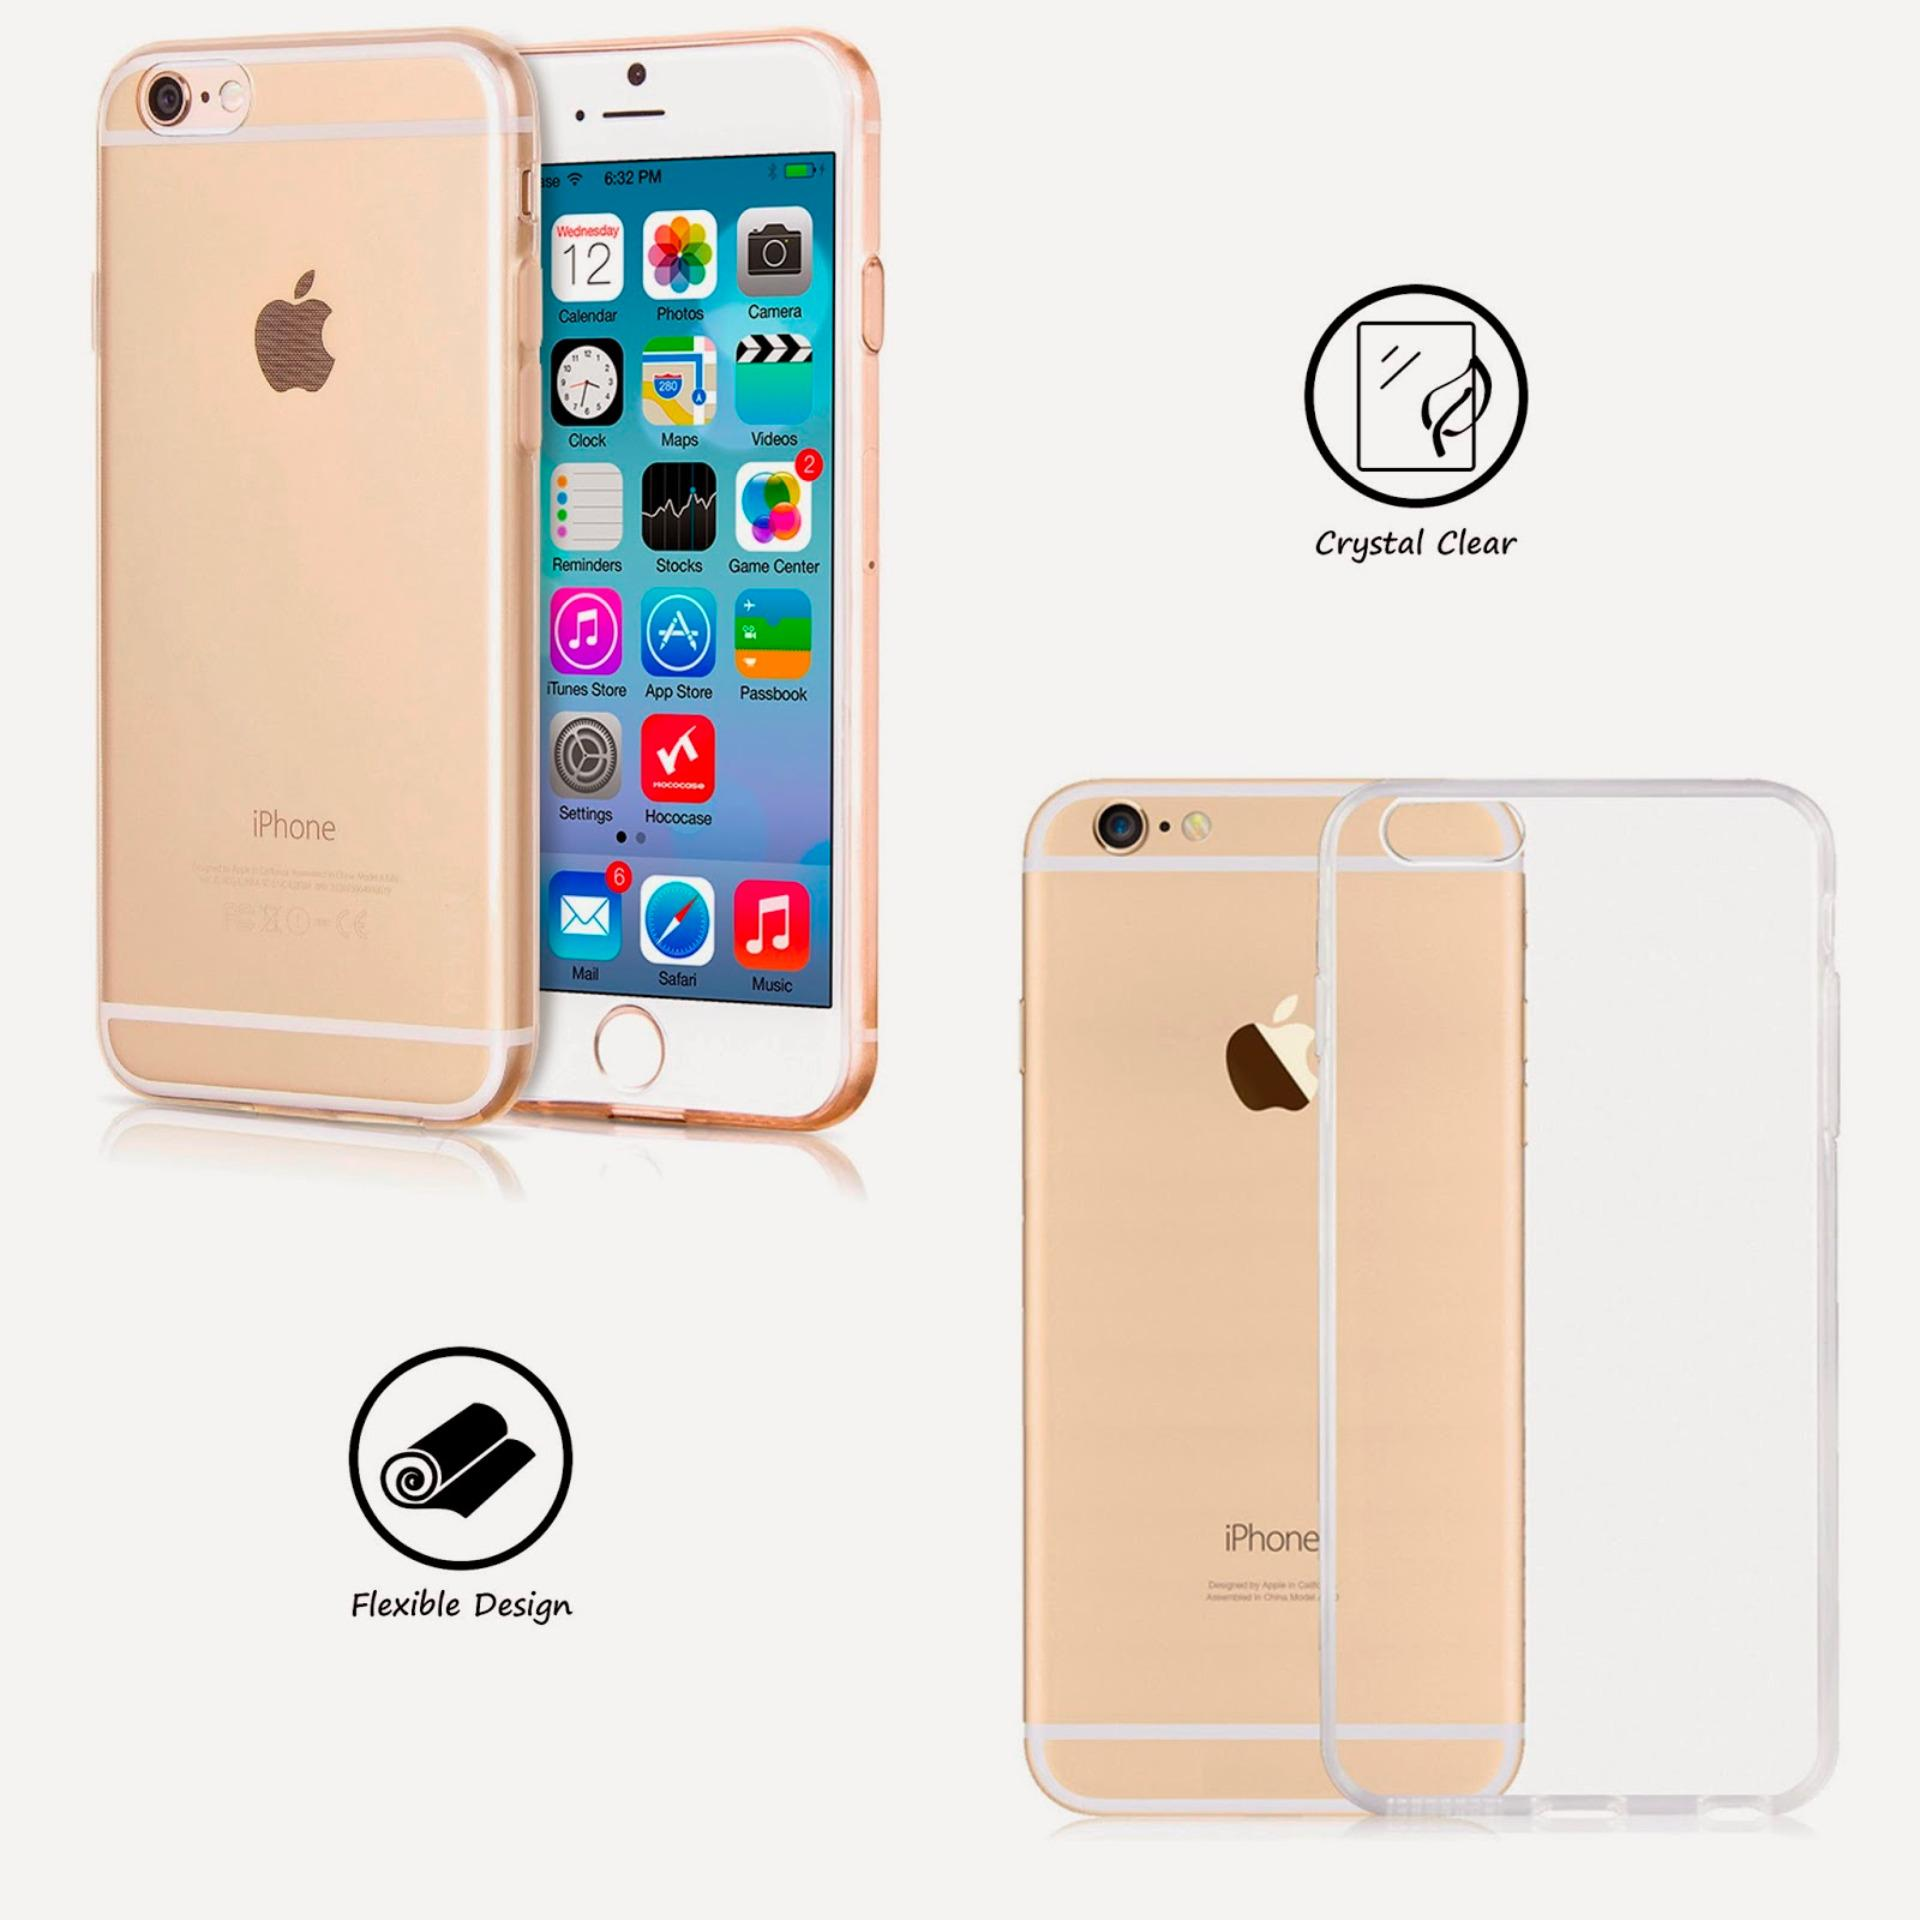 Iphone 6 / 6s UltraThin / Ultra thin / Soft Jelly Case .